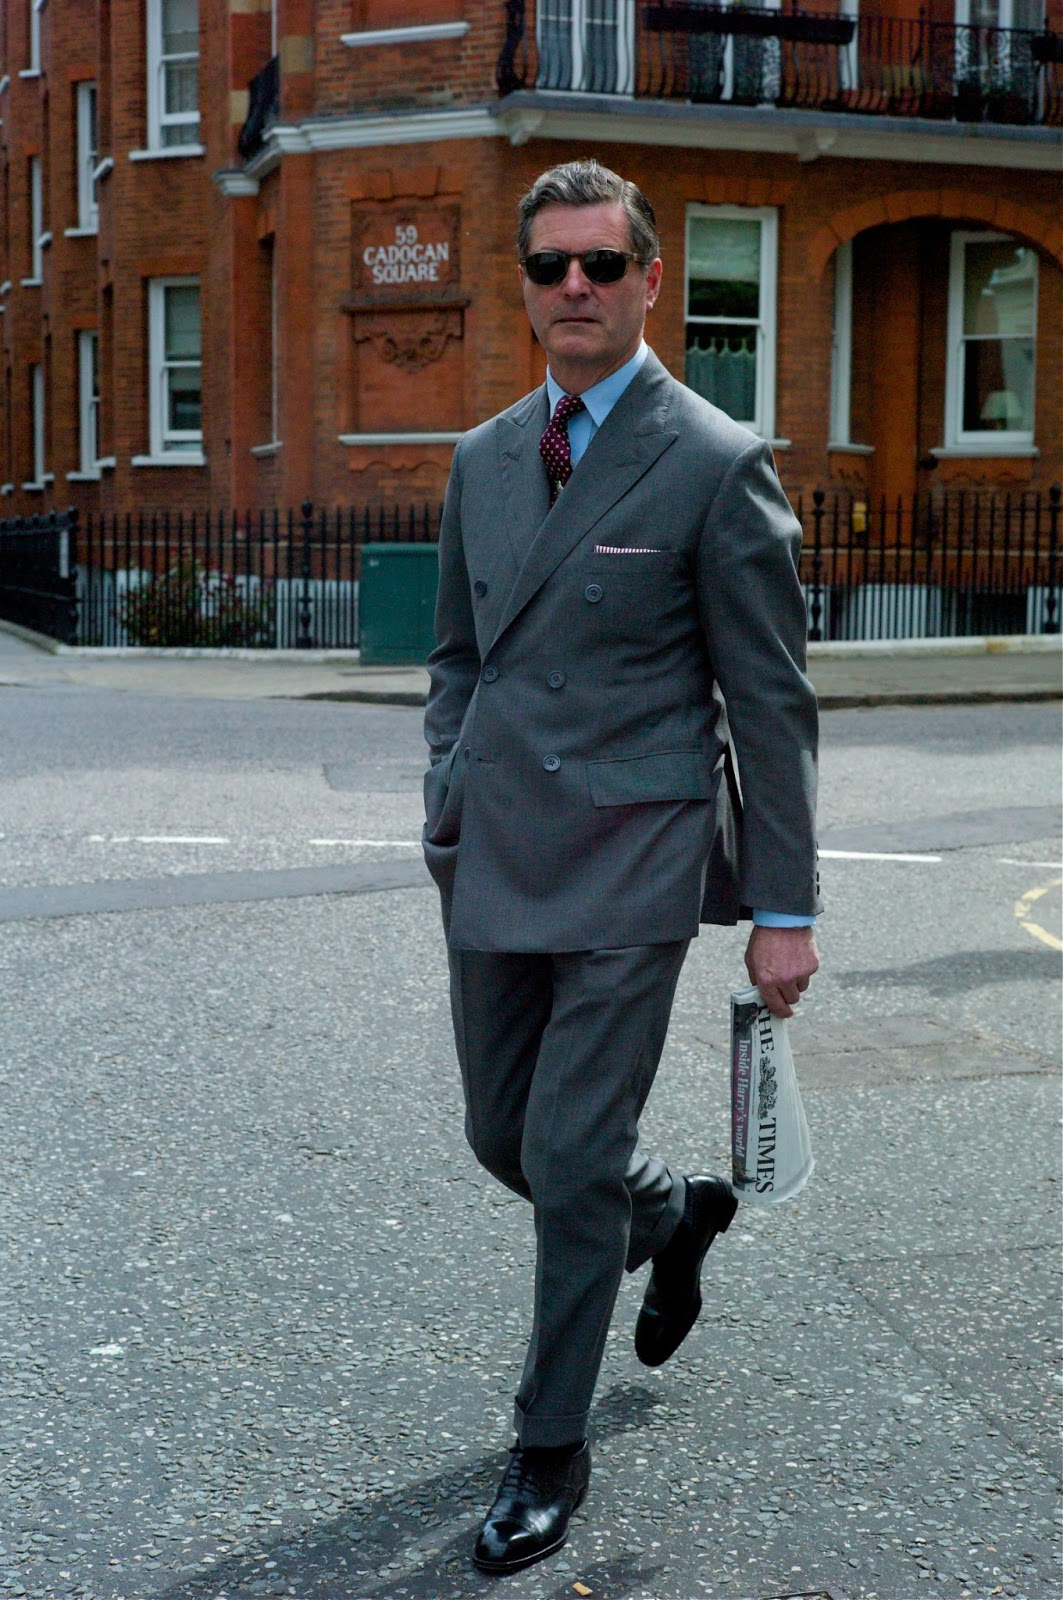 Grey Fox: Hackett - purveyors of fine shirts and suits